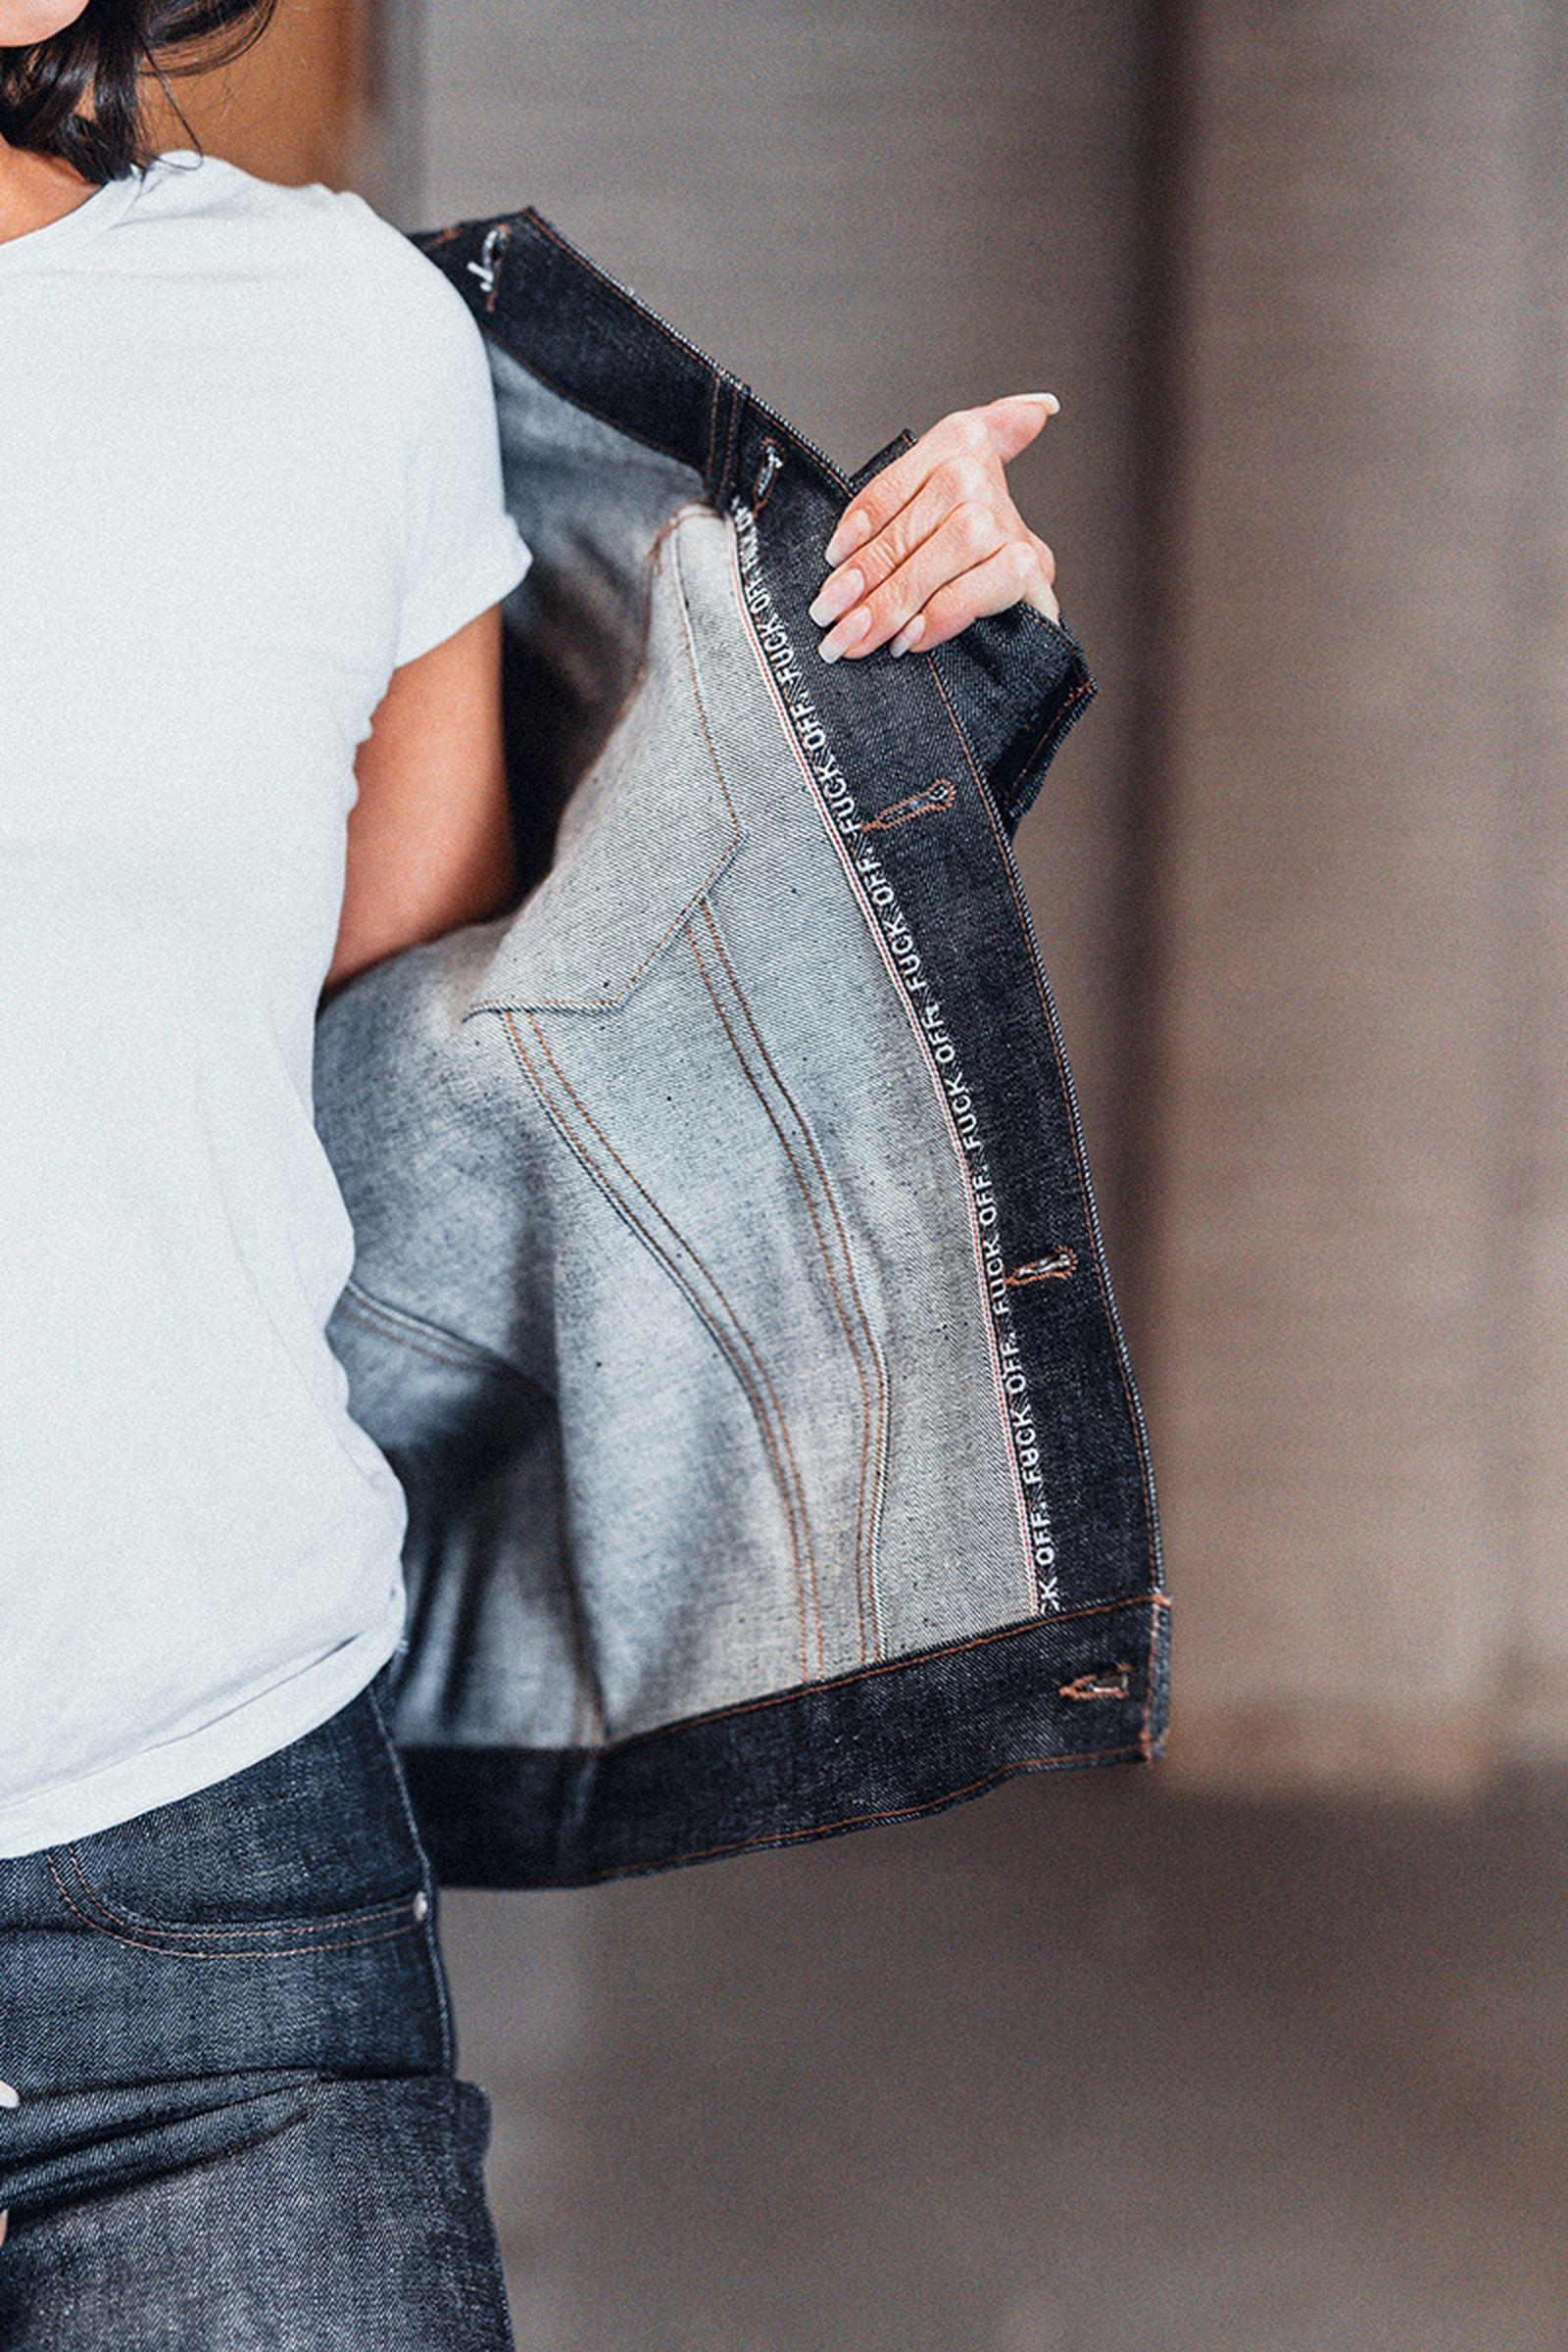 raised by wolves naked and famous denim